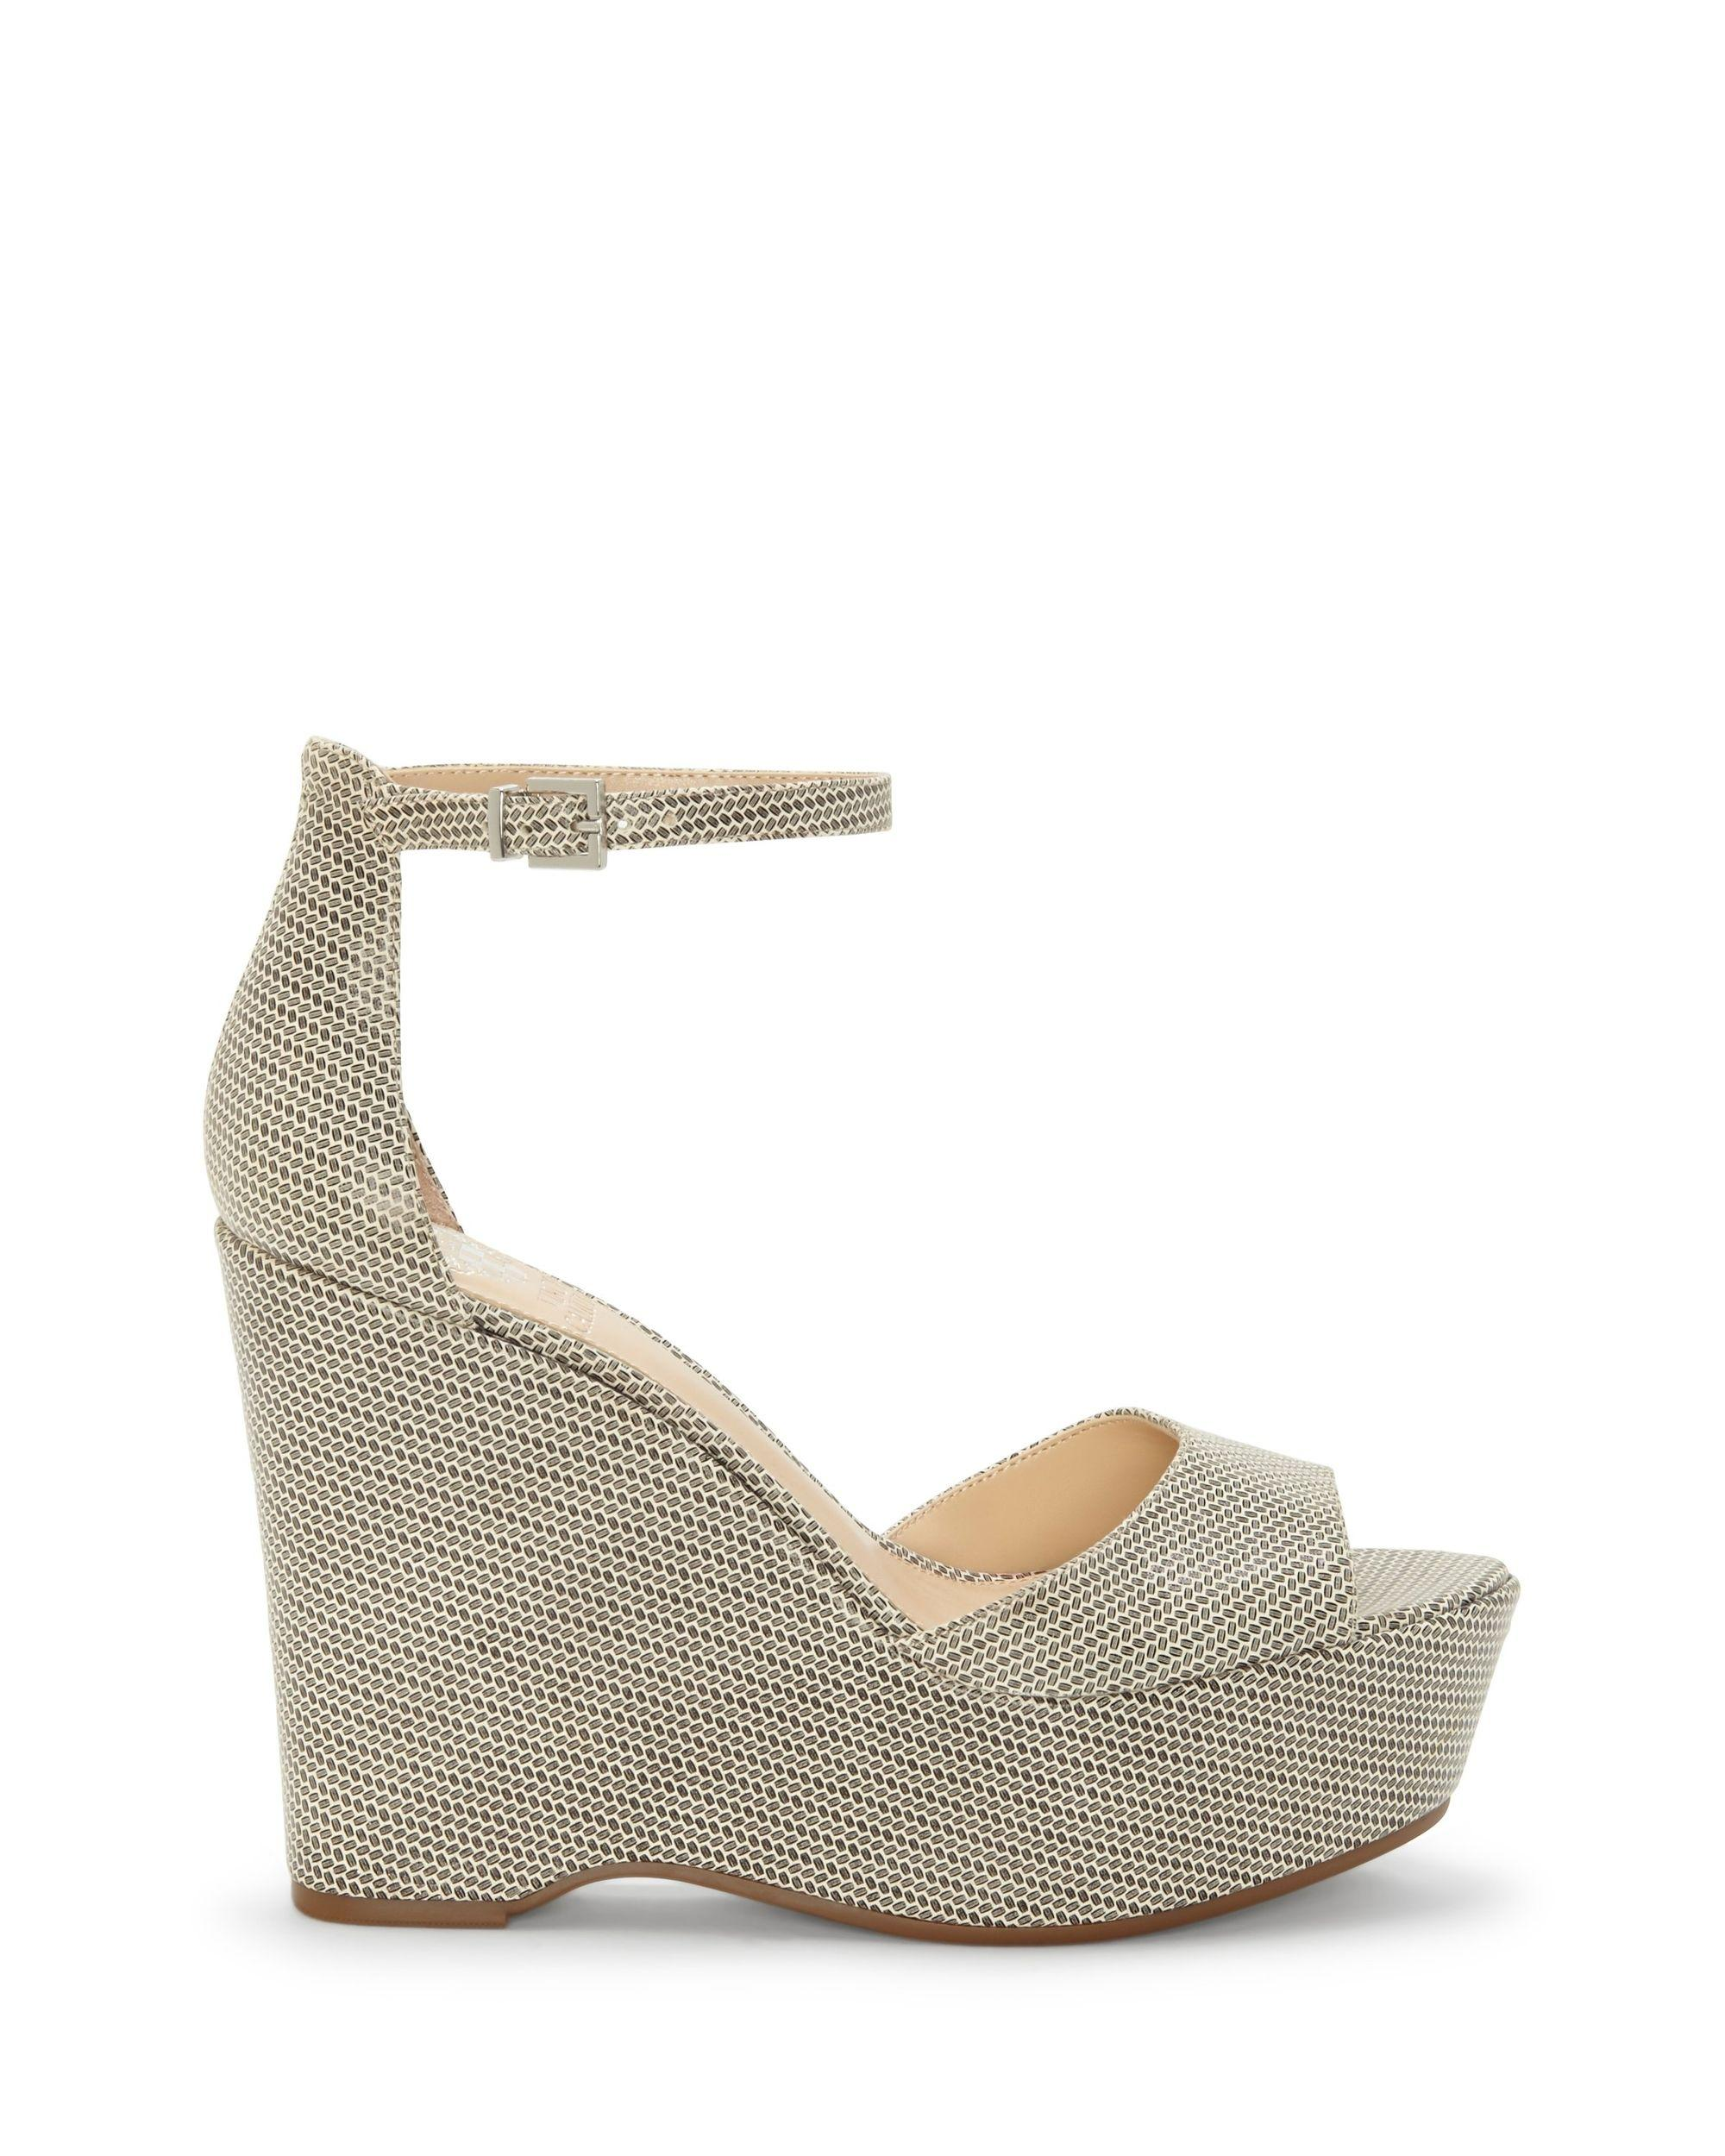 e41f0a038d01 Lyst - Vince Camuto Tatchen – Platform Wedge Sandal in White - Save 36%